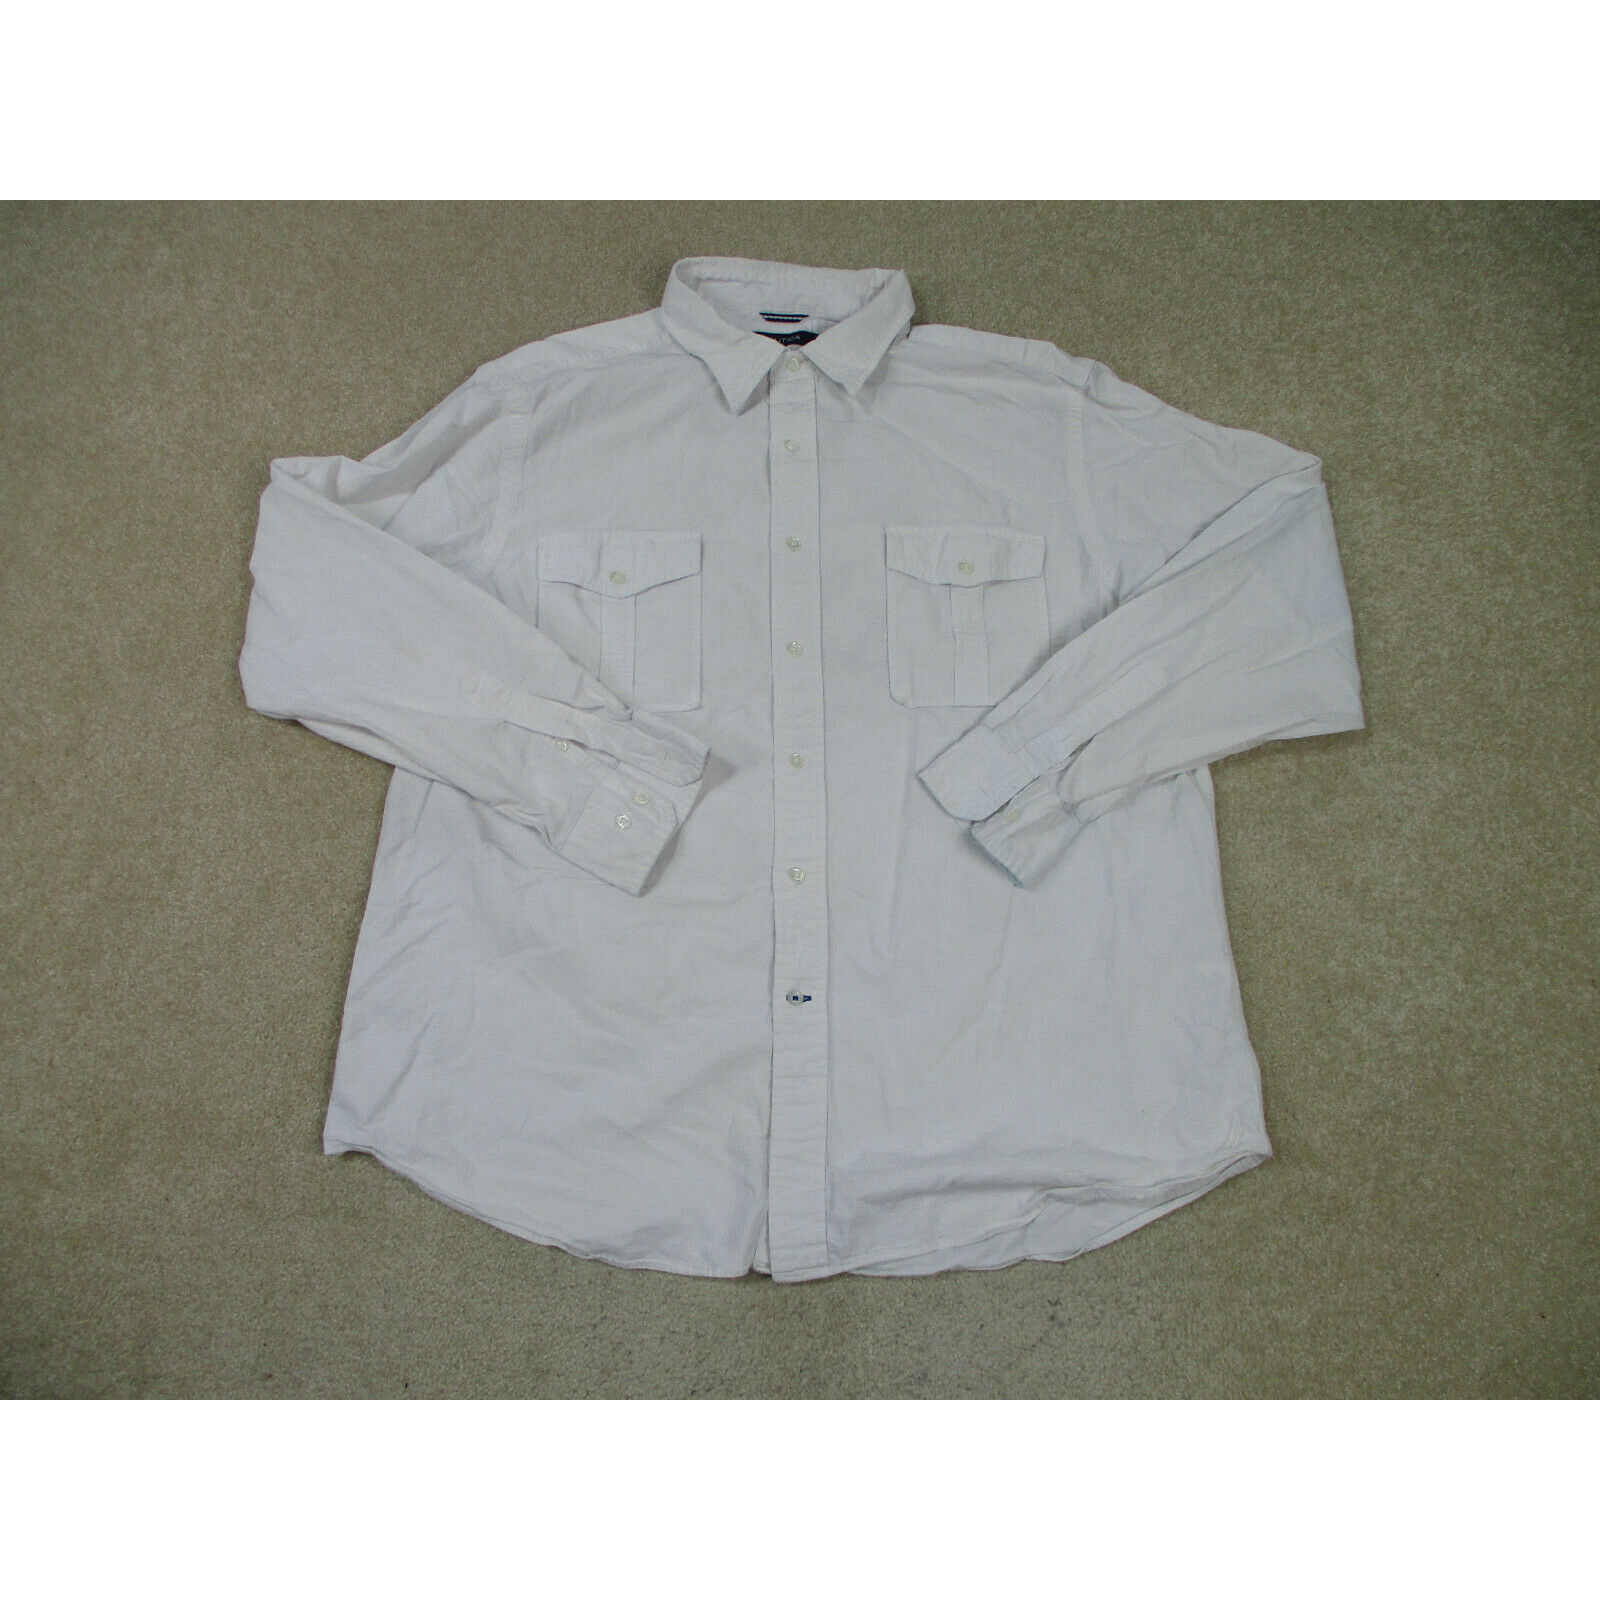 Product Image 1 - Nautica Button Up Shirt Adult